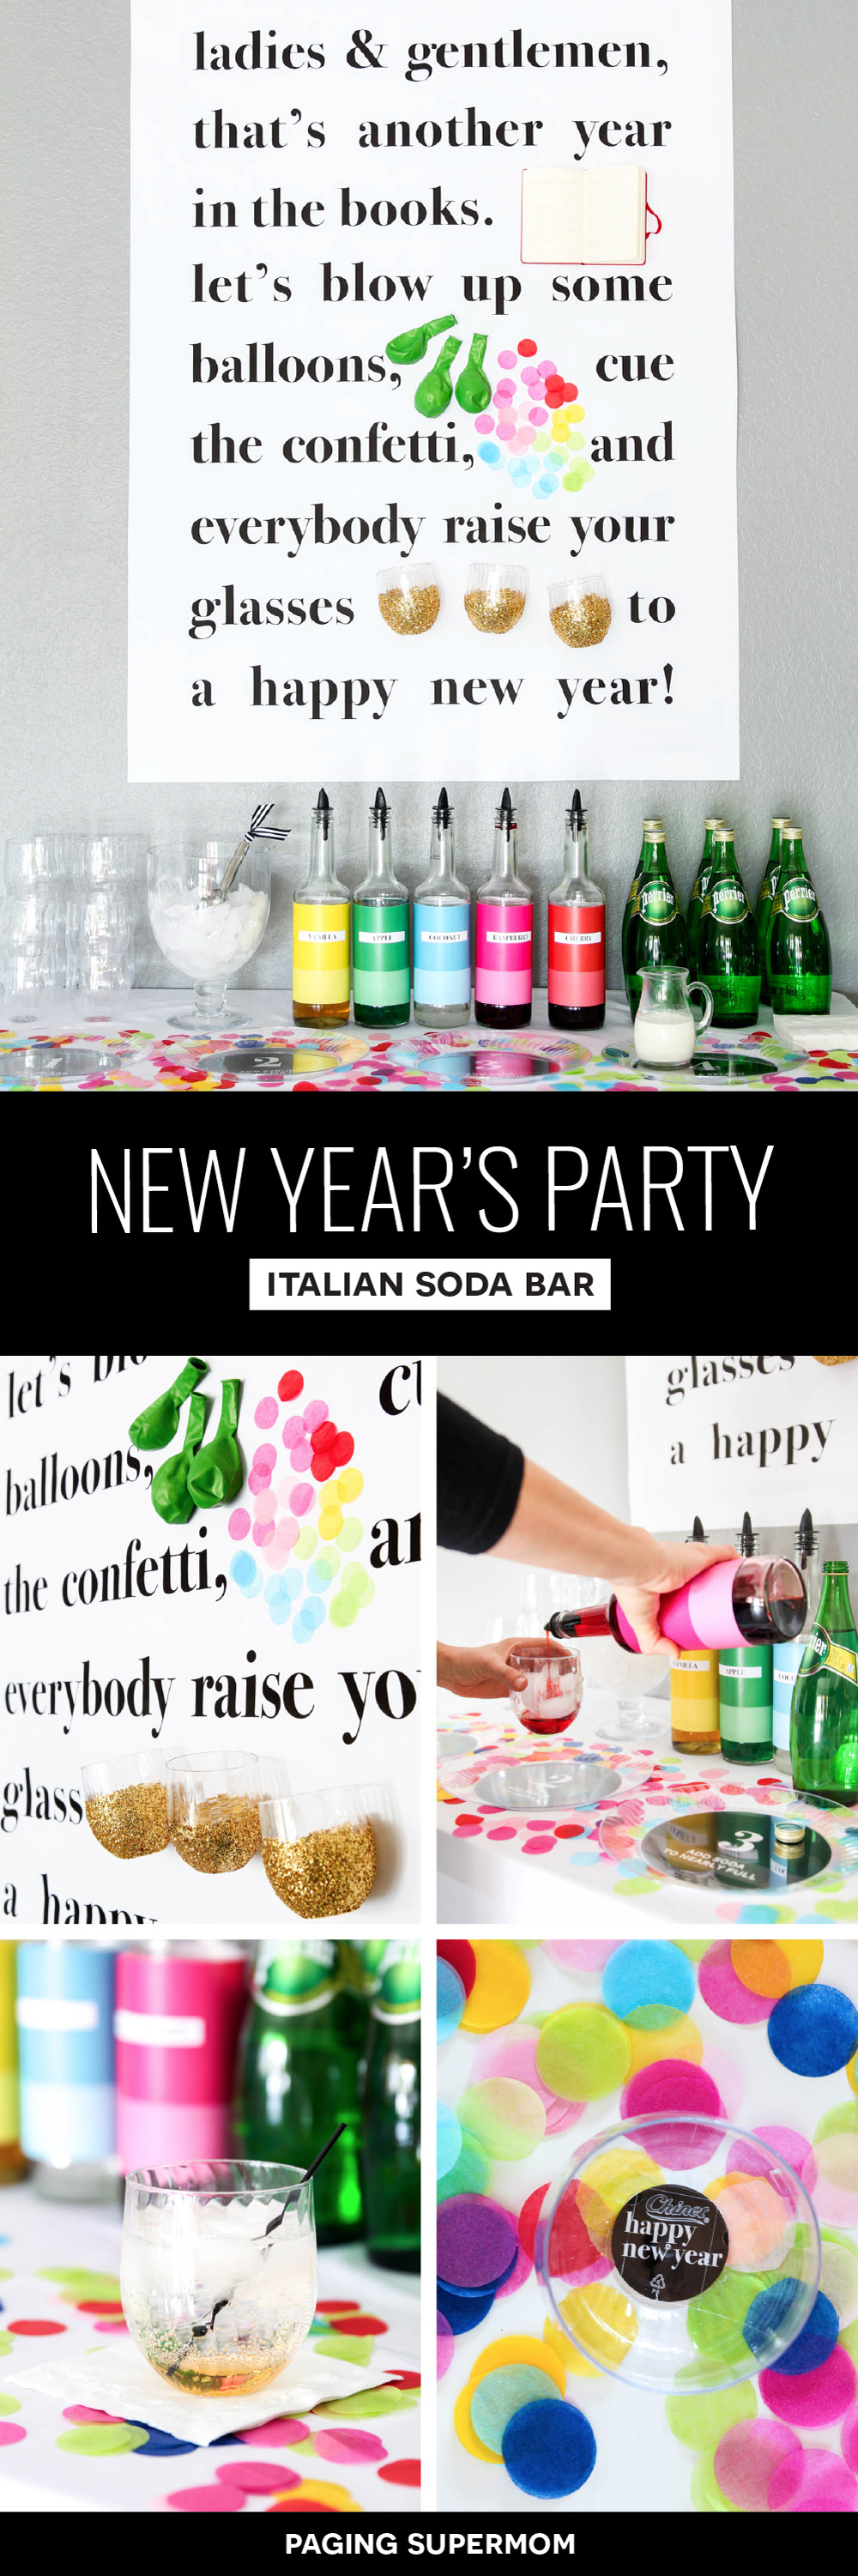 Colorful New Year's Eve Party Ideas inspired by Kate Spade's Story Wall + free printables for a family-friendly New Year's Eve Italian Soda Bar via @PagingSupermom